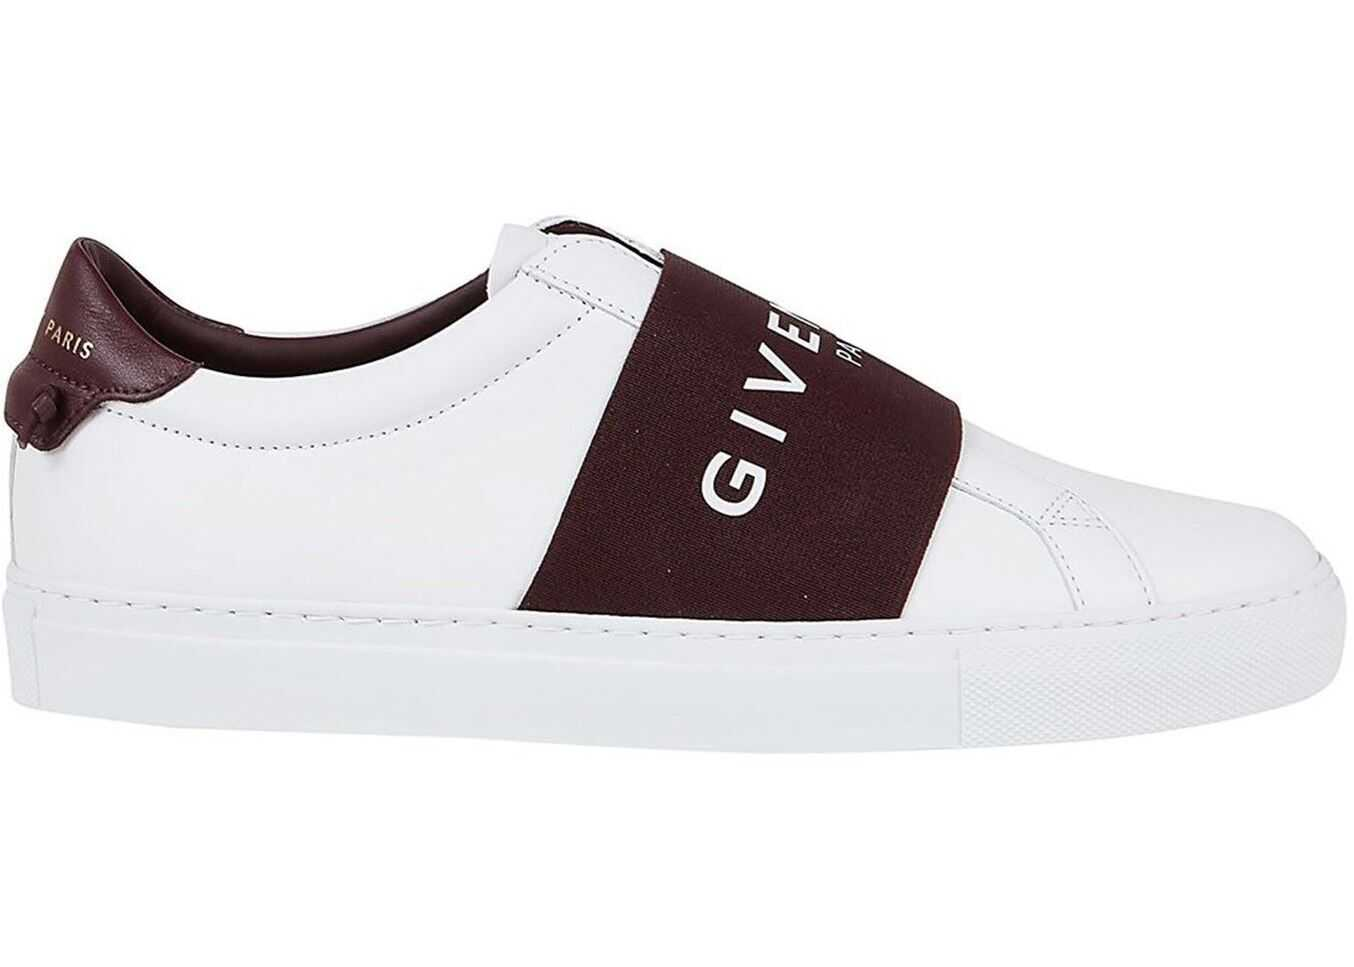 Givenchy Urban Street Sneakers White